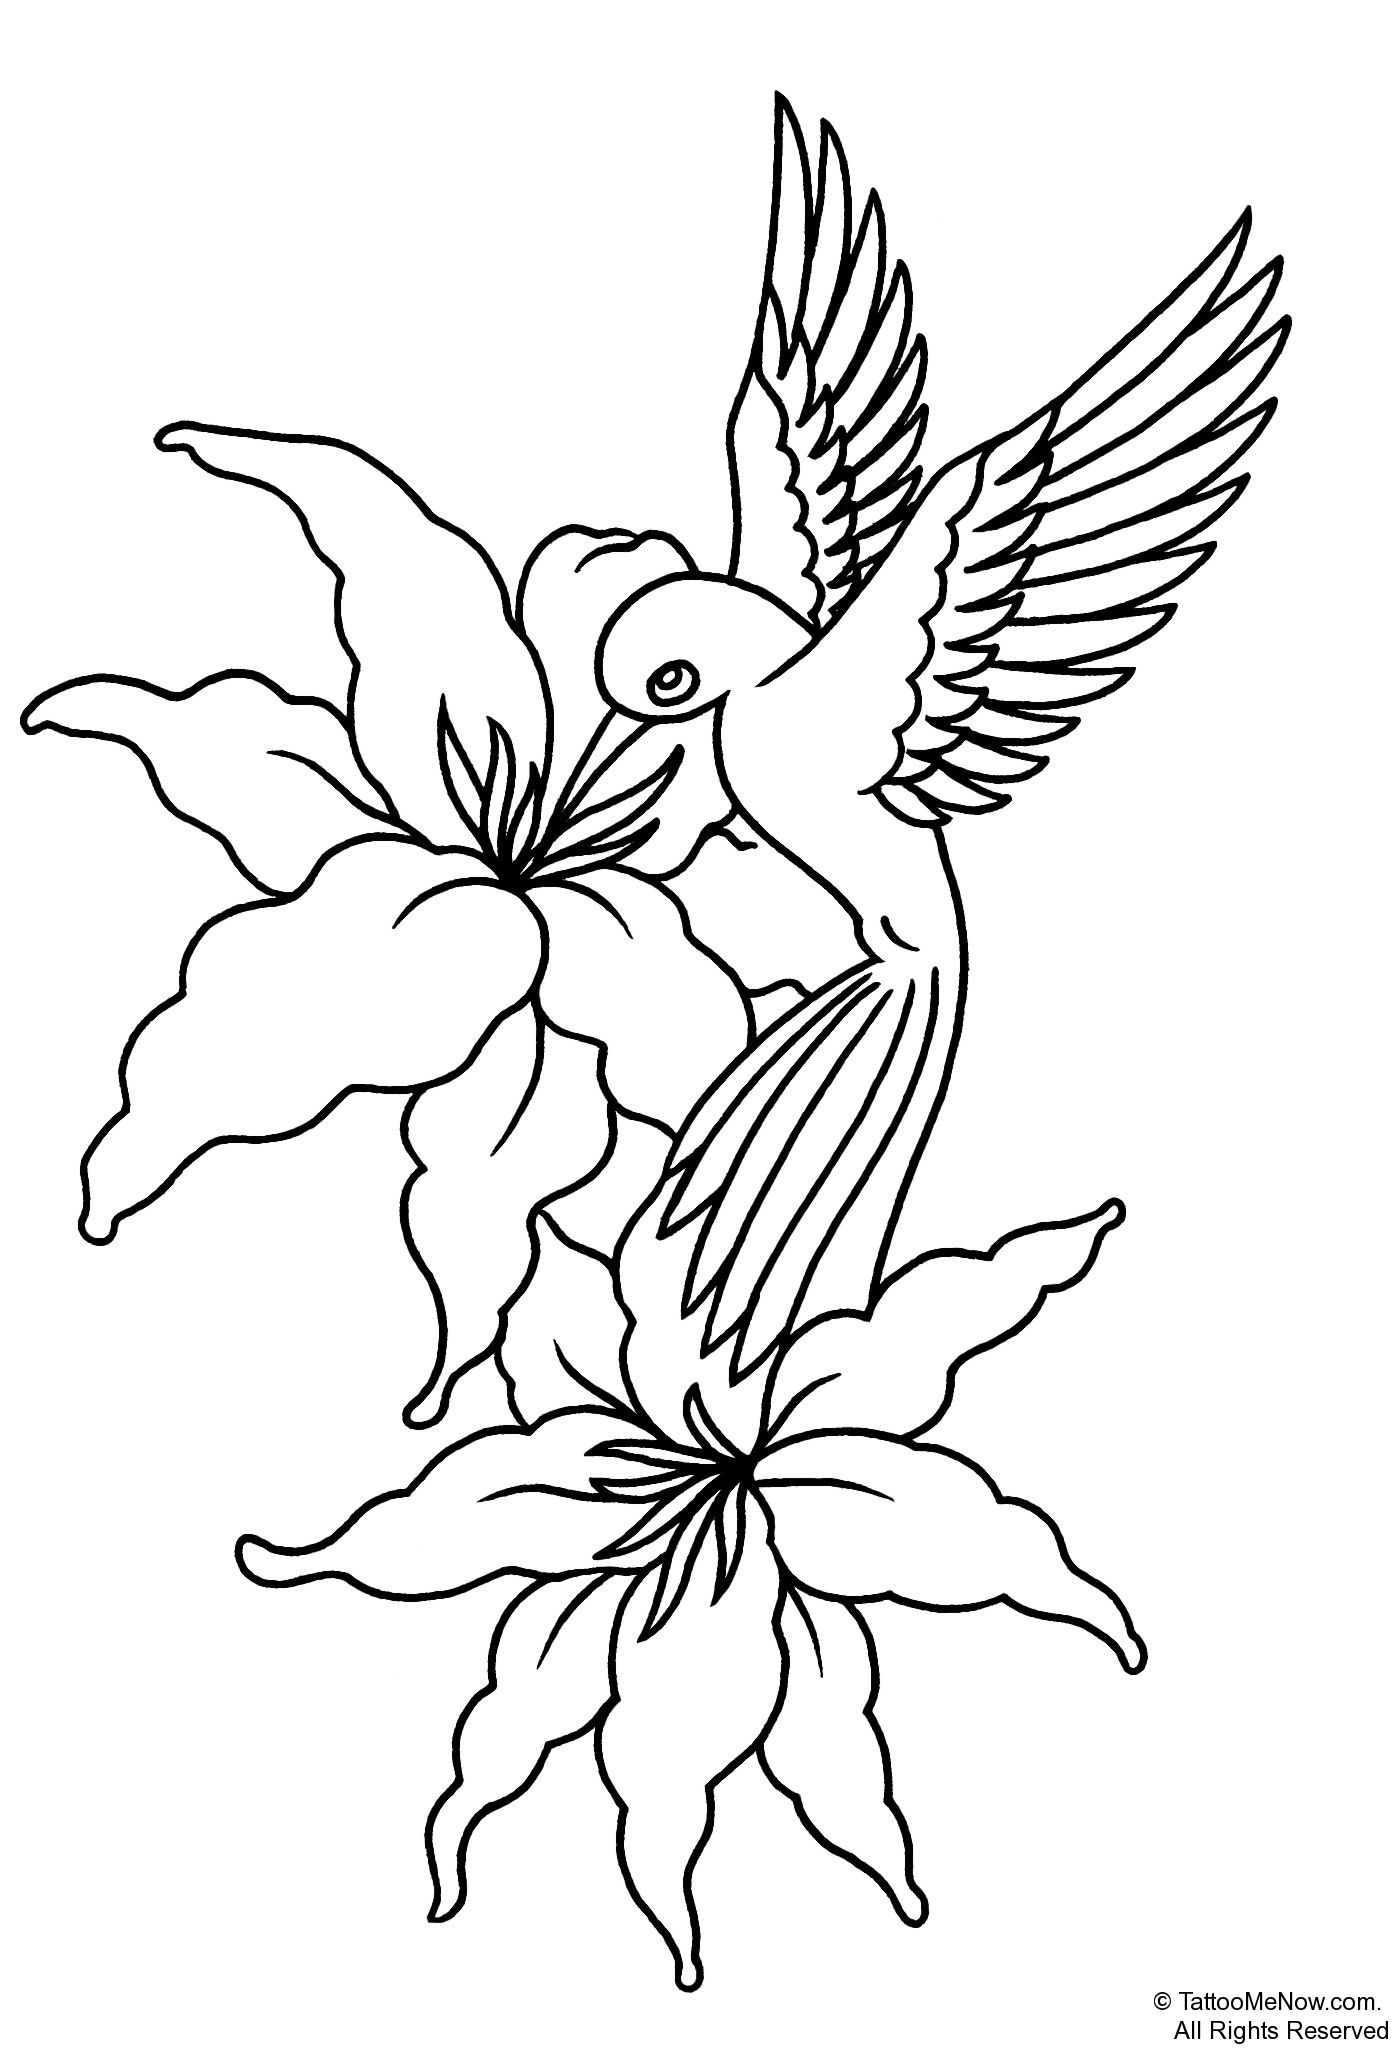 Free Printable Tattoo Stencils | Your Free Tattoo Designs & Stencils - Free Printable Tattoo Designs